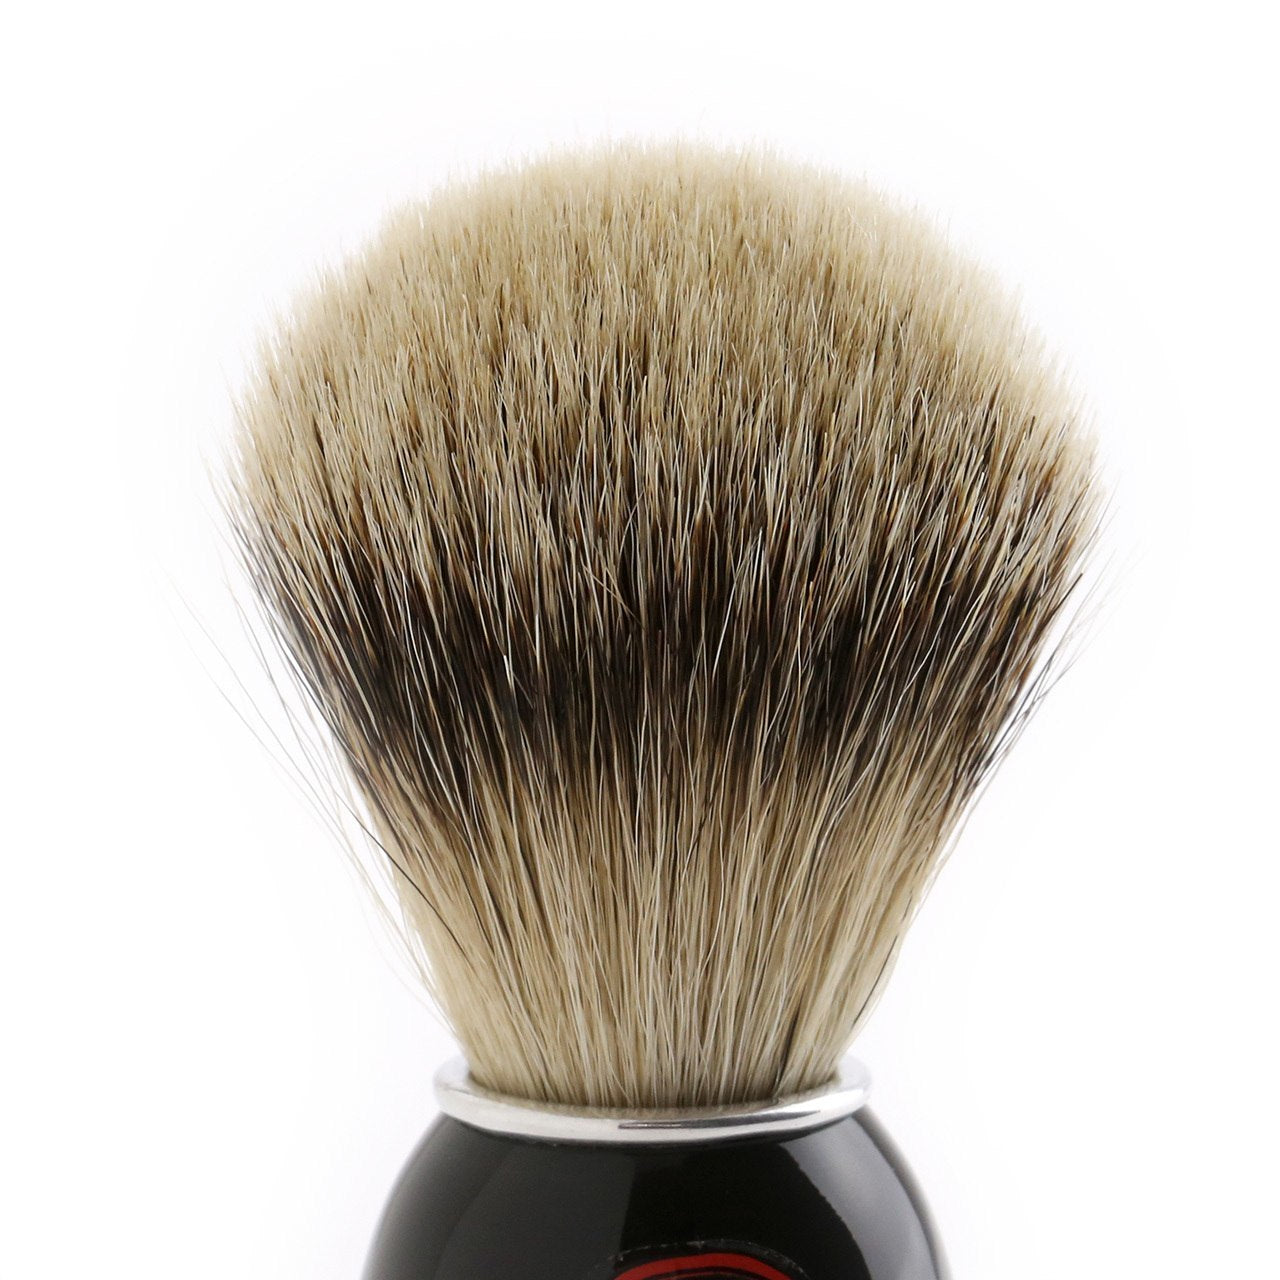 Semogue High Density Silver Tip Shaving Brush, black and clear retro acrylic handle